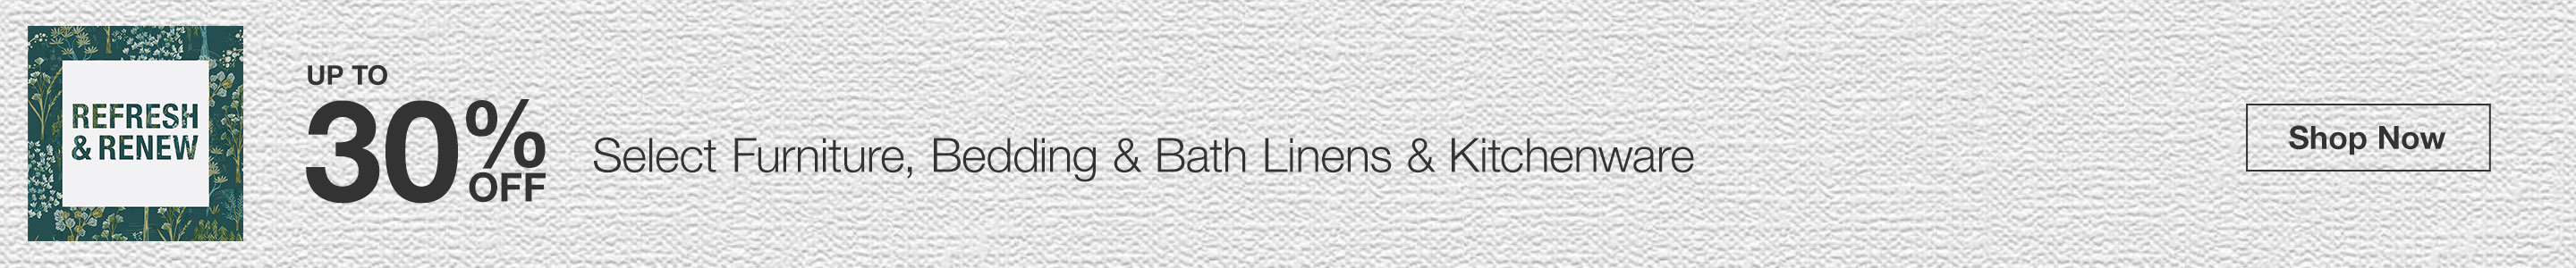 Up to 30% Off Select Furniture, Bedding & Bath Linens & Kitchenware